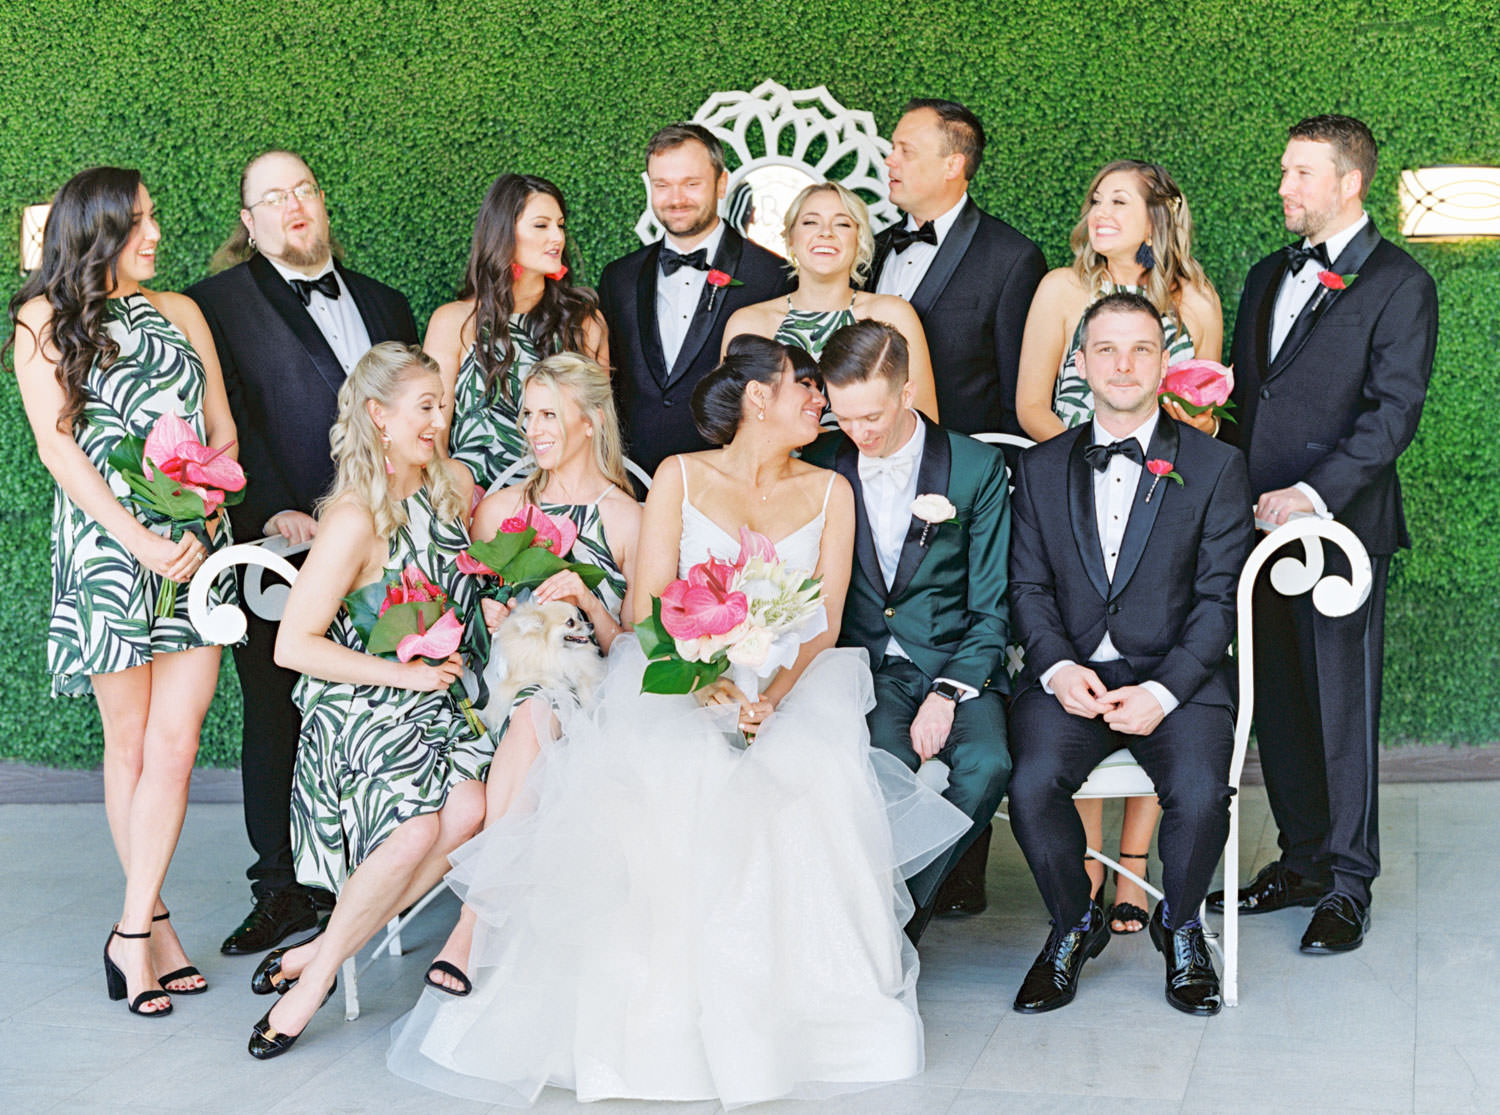 Groom in dark teal tuxedo and groomsmen in black tuxedos. Bridesmaids in tropical palm leaf print short dresses carrying bouquets with palm leaves and pink anthurium. Ceremony white pergola site with large white planters filled with palm leaves and paddle cactus plants covered in blush and fuchsia pink flowers. Riviera Palm Springs Wedding by Cavin Elizabeth Photography